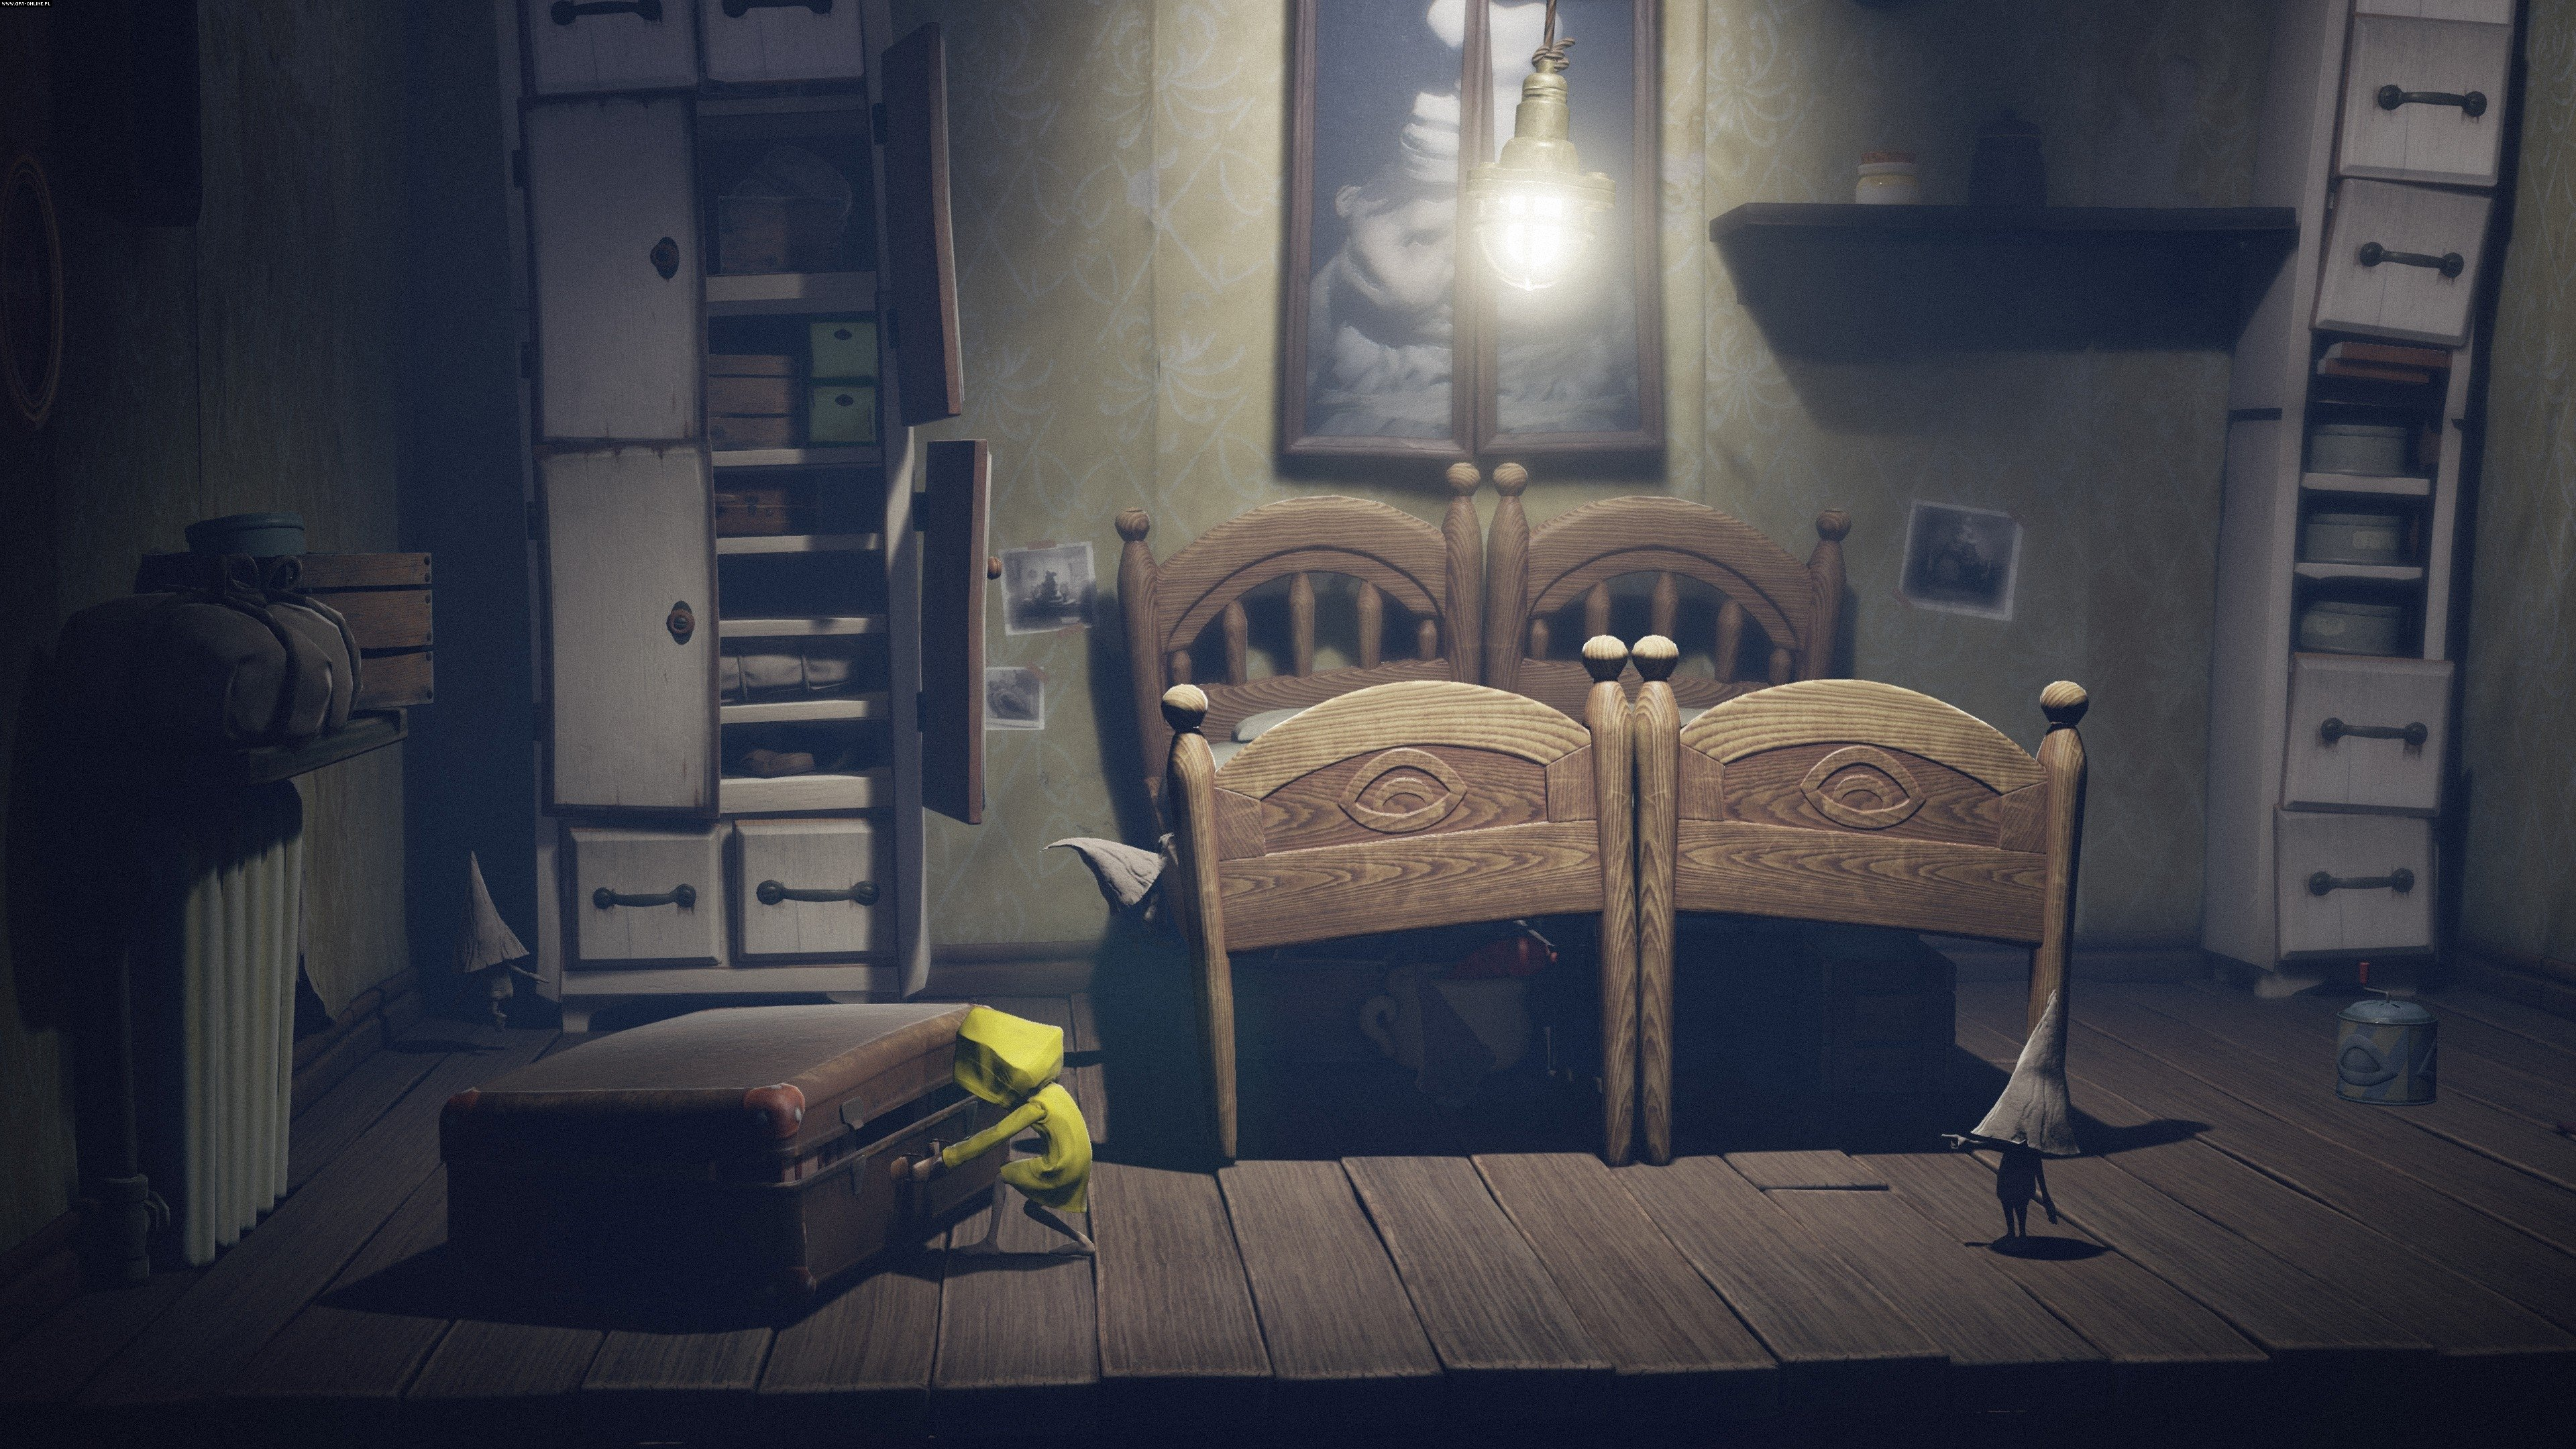 Little Nightmares PS4 Games Image 6/15, Tarsier Studios, Bandai Namco Entertainment